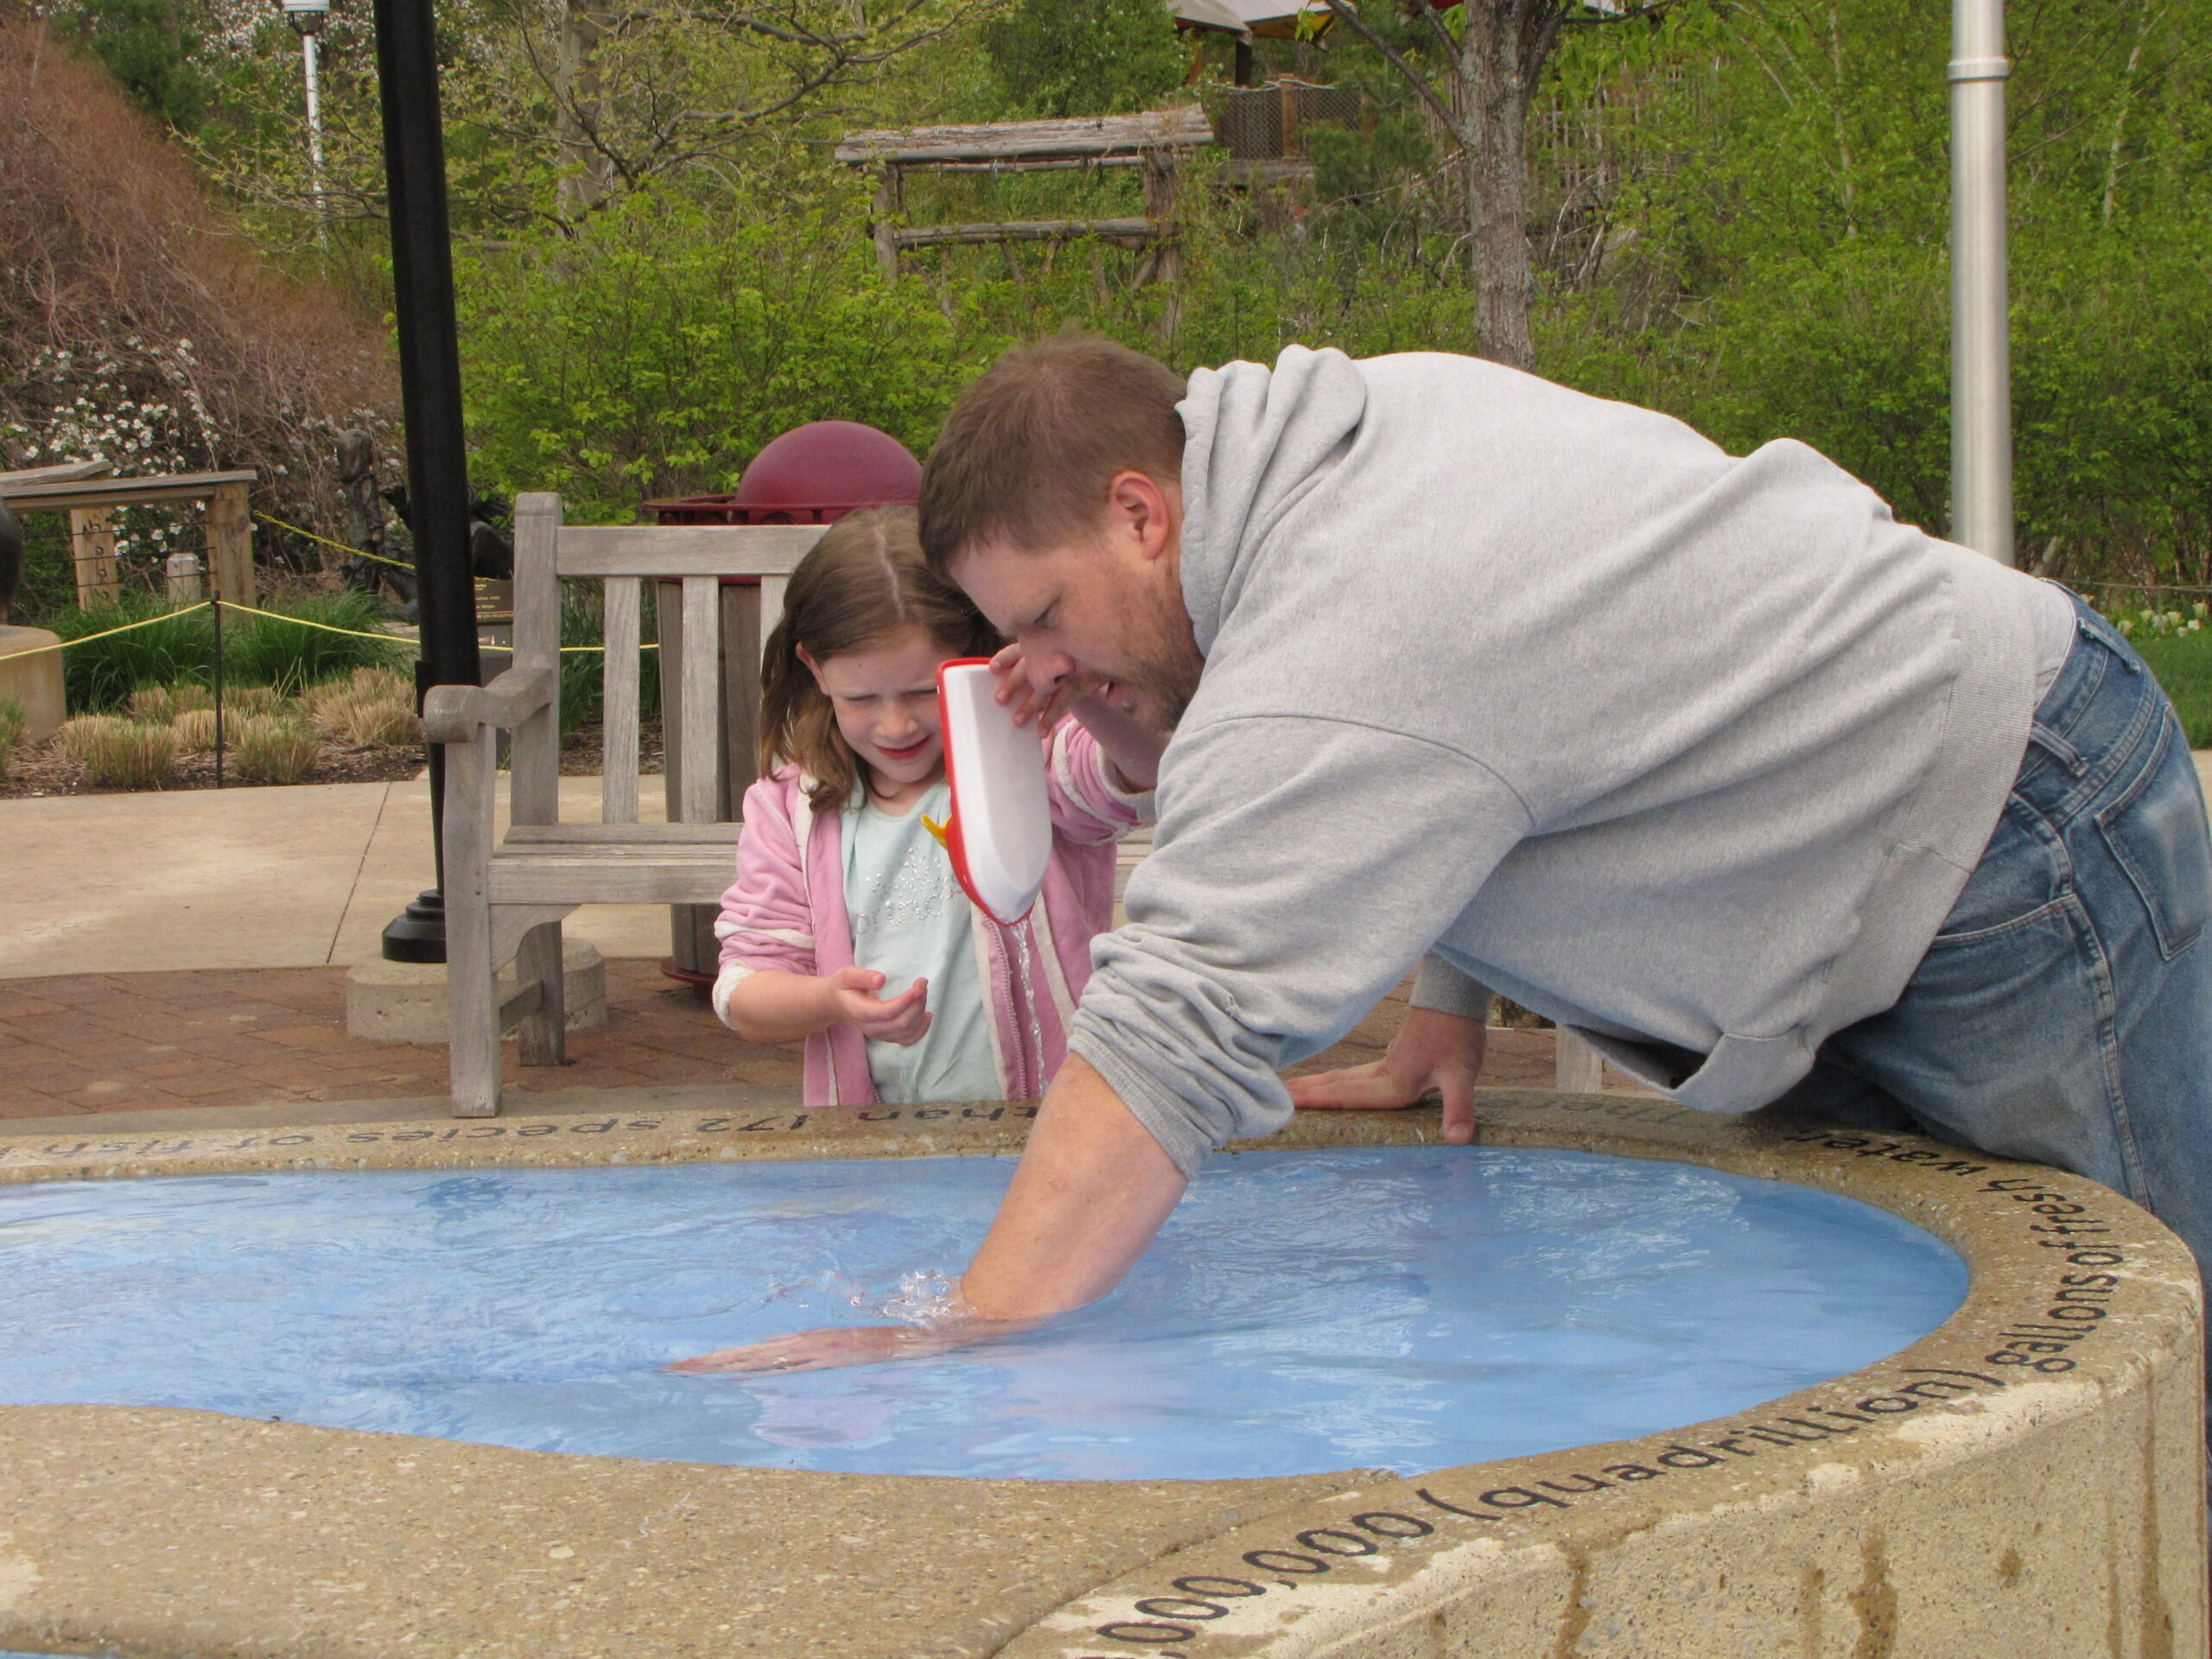 dad and daughter playing in the Great Lakes Garden at Meijer Gardens.